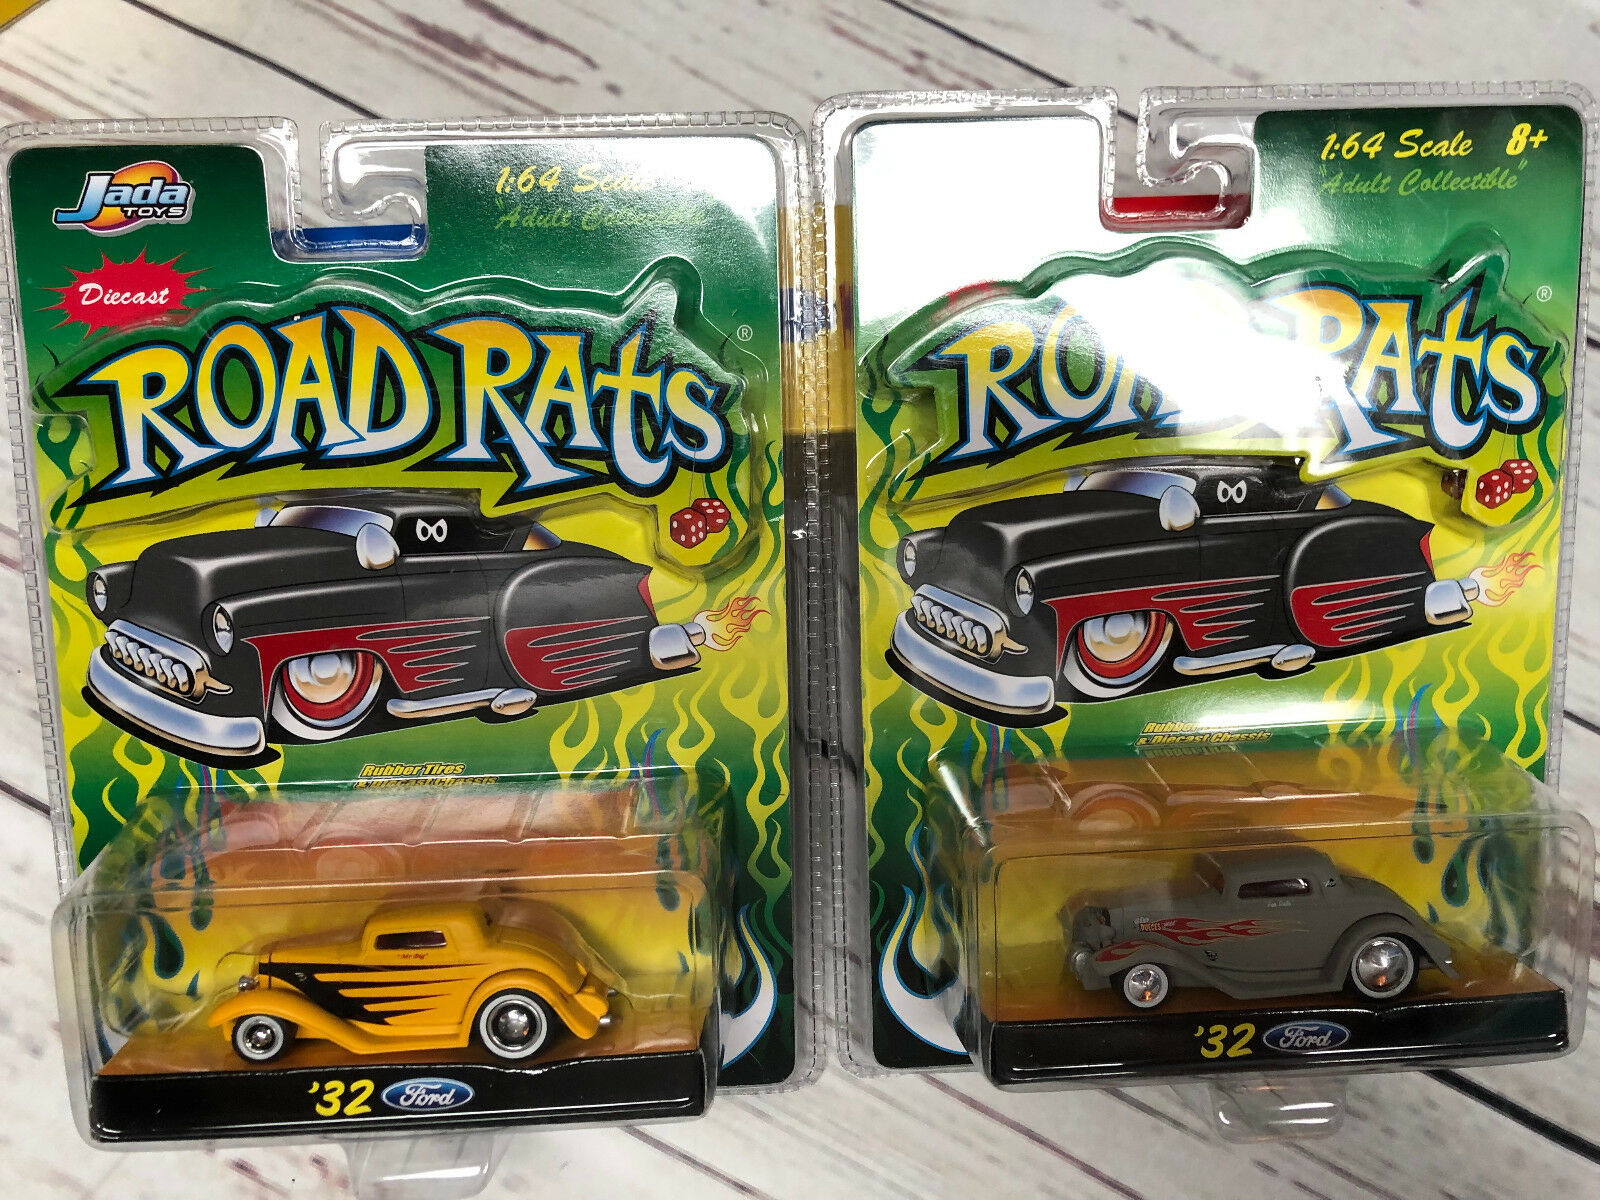 LOT of 2 Jada - DUB City - 1 64 - Road Rats Series 32' FORD, NEW